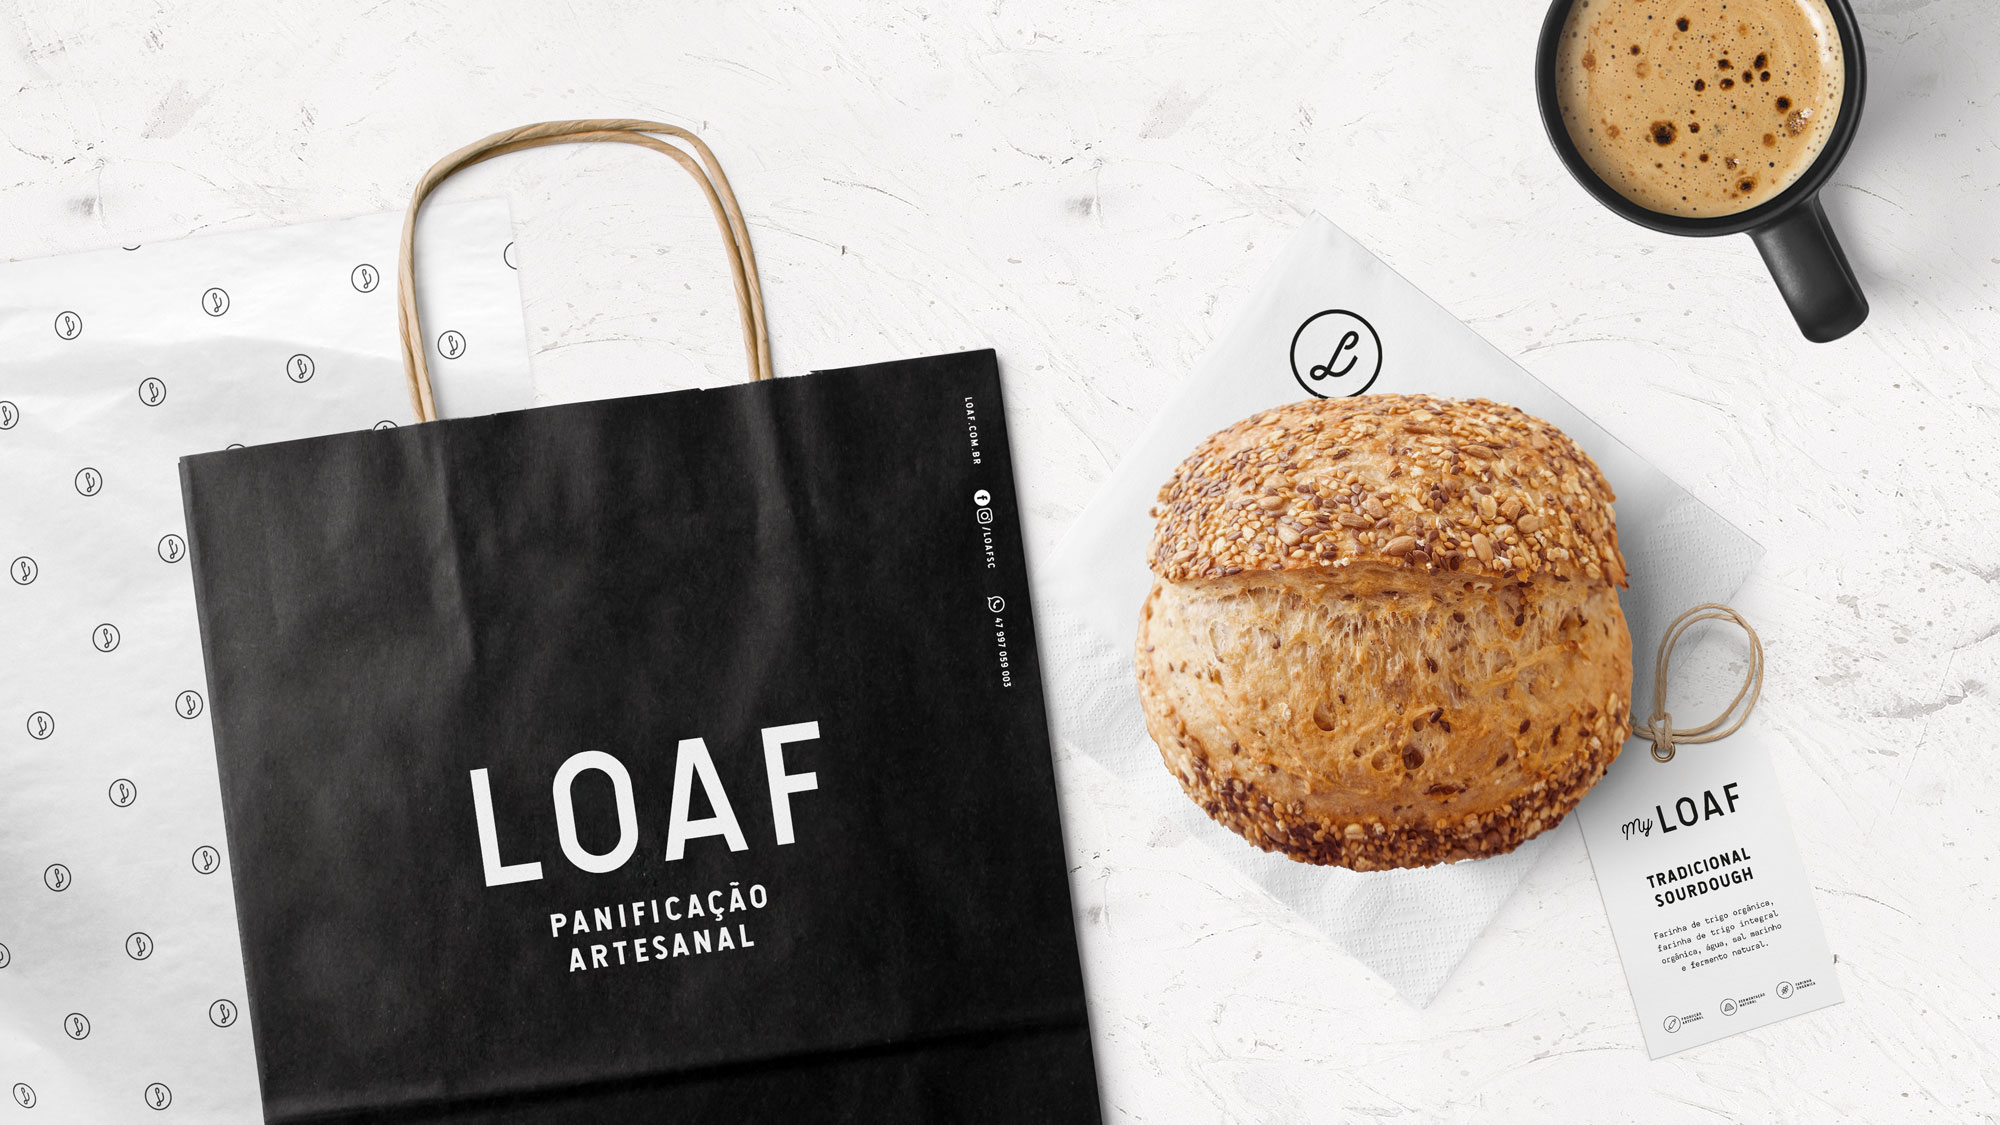 New Brand and Packaging for an Artisan Bakery in Brazil